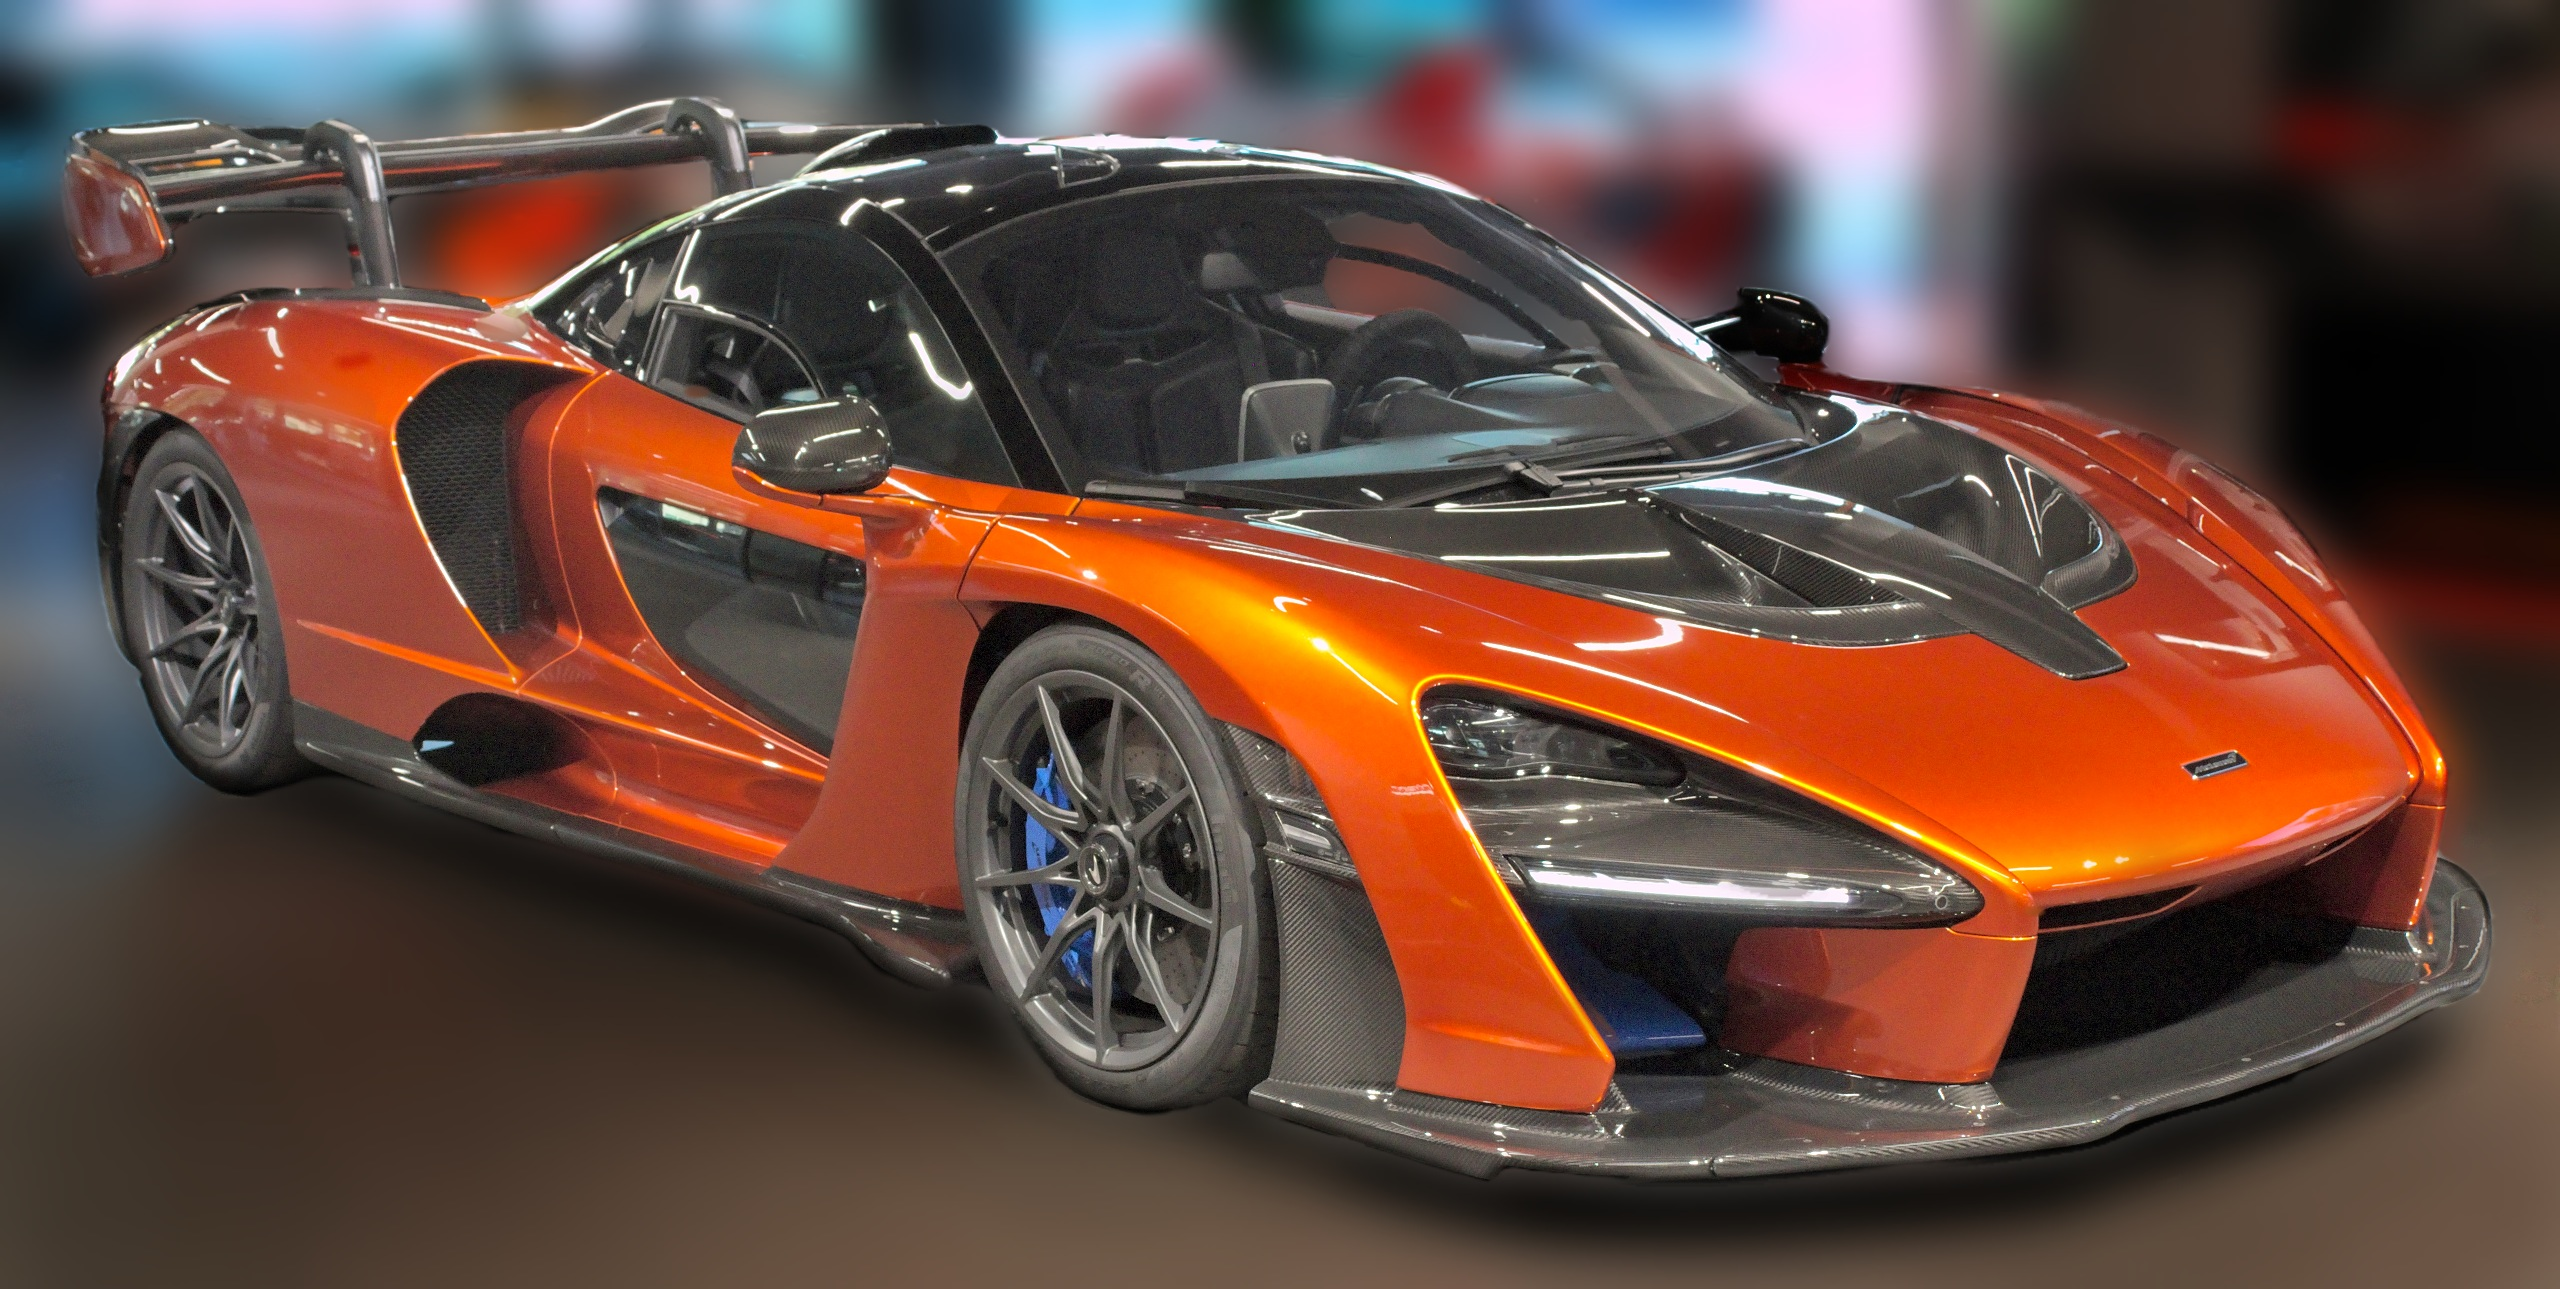 McLaren Senna - Dream Cars of the Past and Present